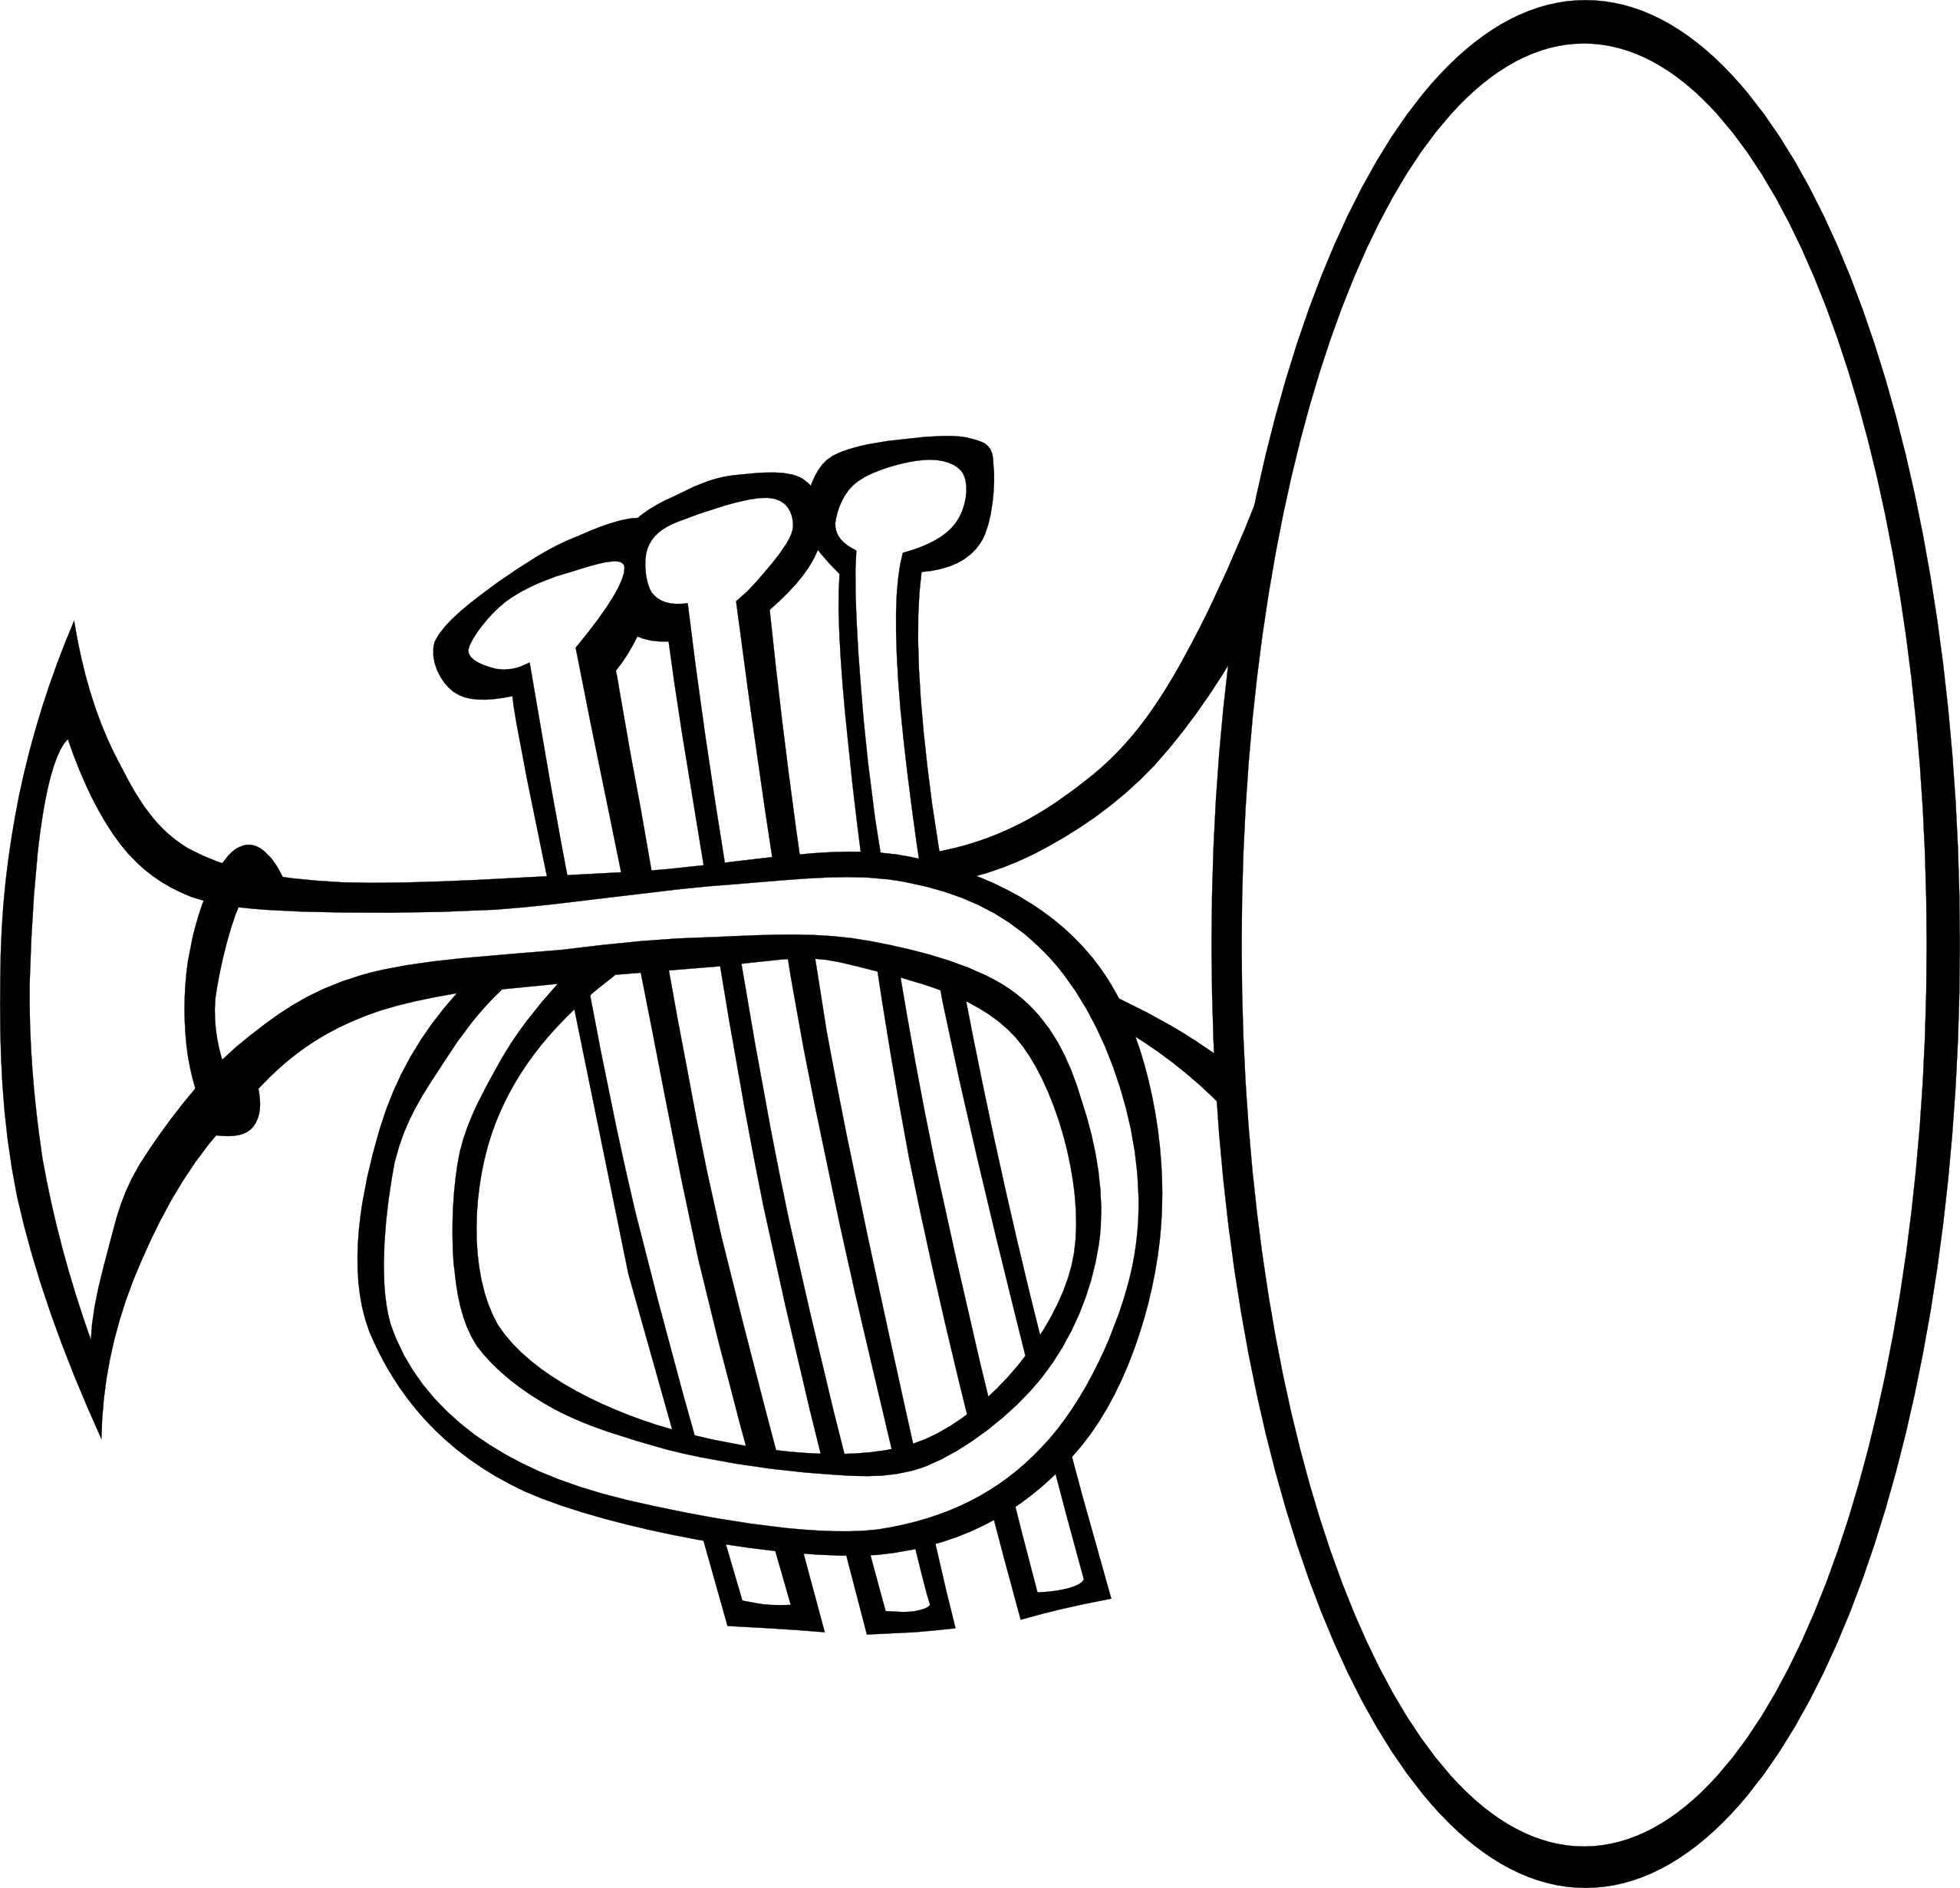 Music Instrument Clipart Black .-Music Instrument Clipart Black .-14